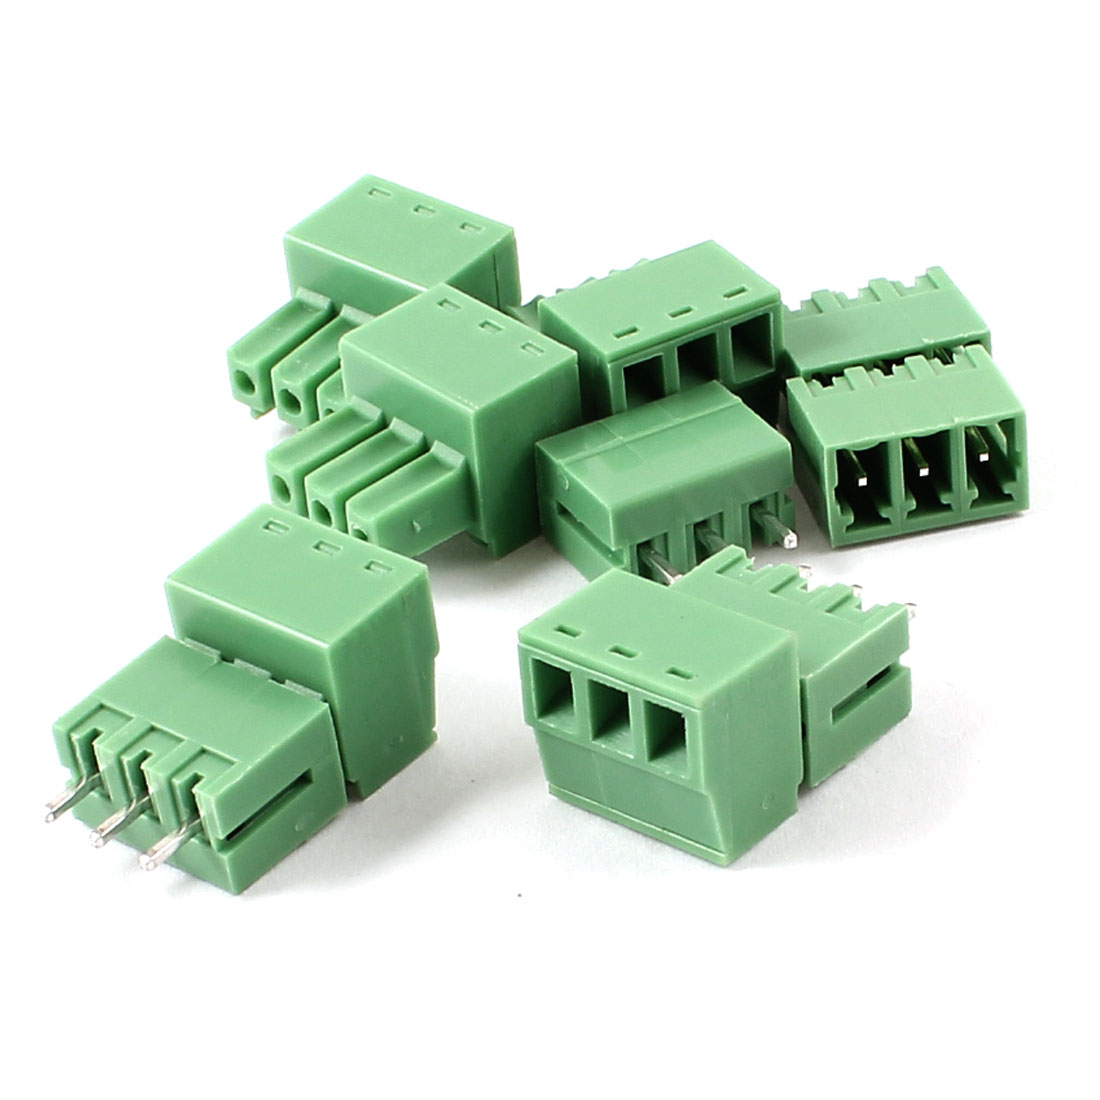 5 Pairs 3P 3.81mm Screw Pluggable Terminal Block Connector 300V 8A